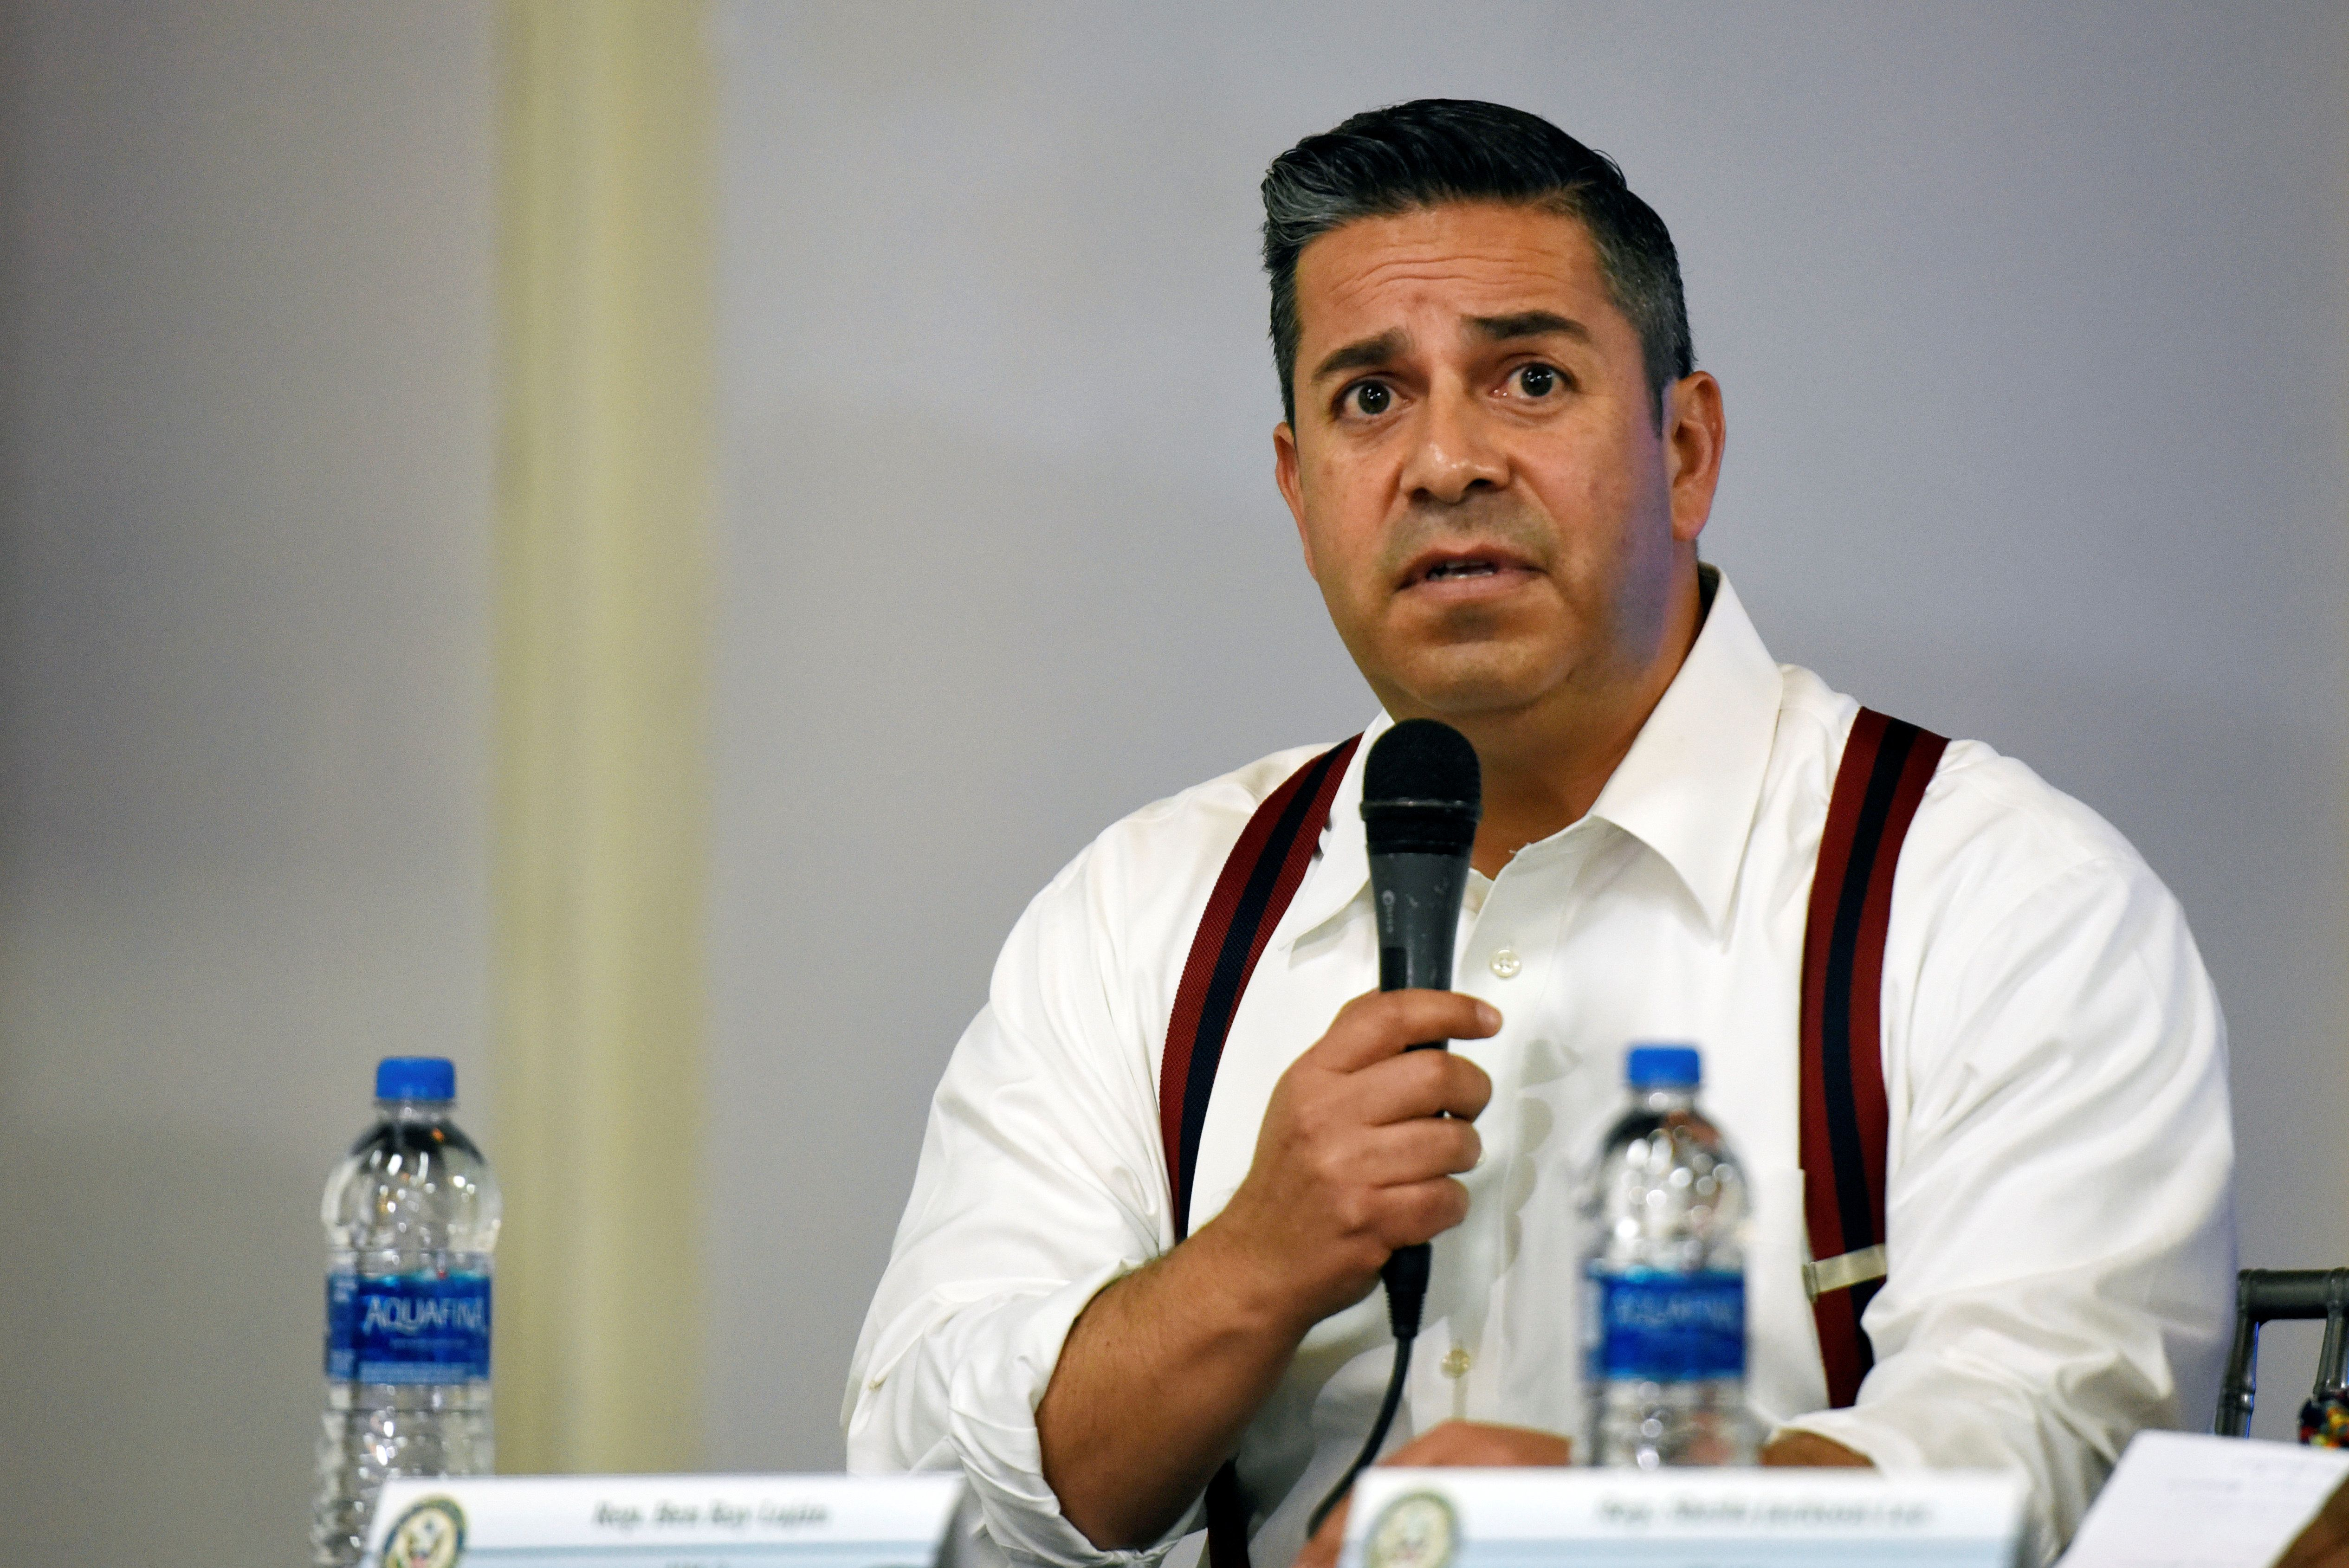 Rep. Ben Ray Luján (D-N.M.) speaks to reporters after visiting shelters in Brownsville, Texas, for minors apprehended